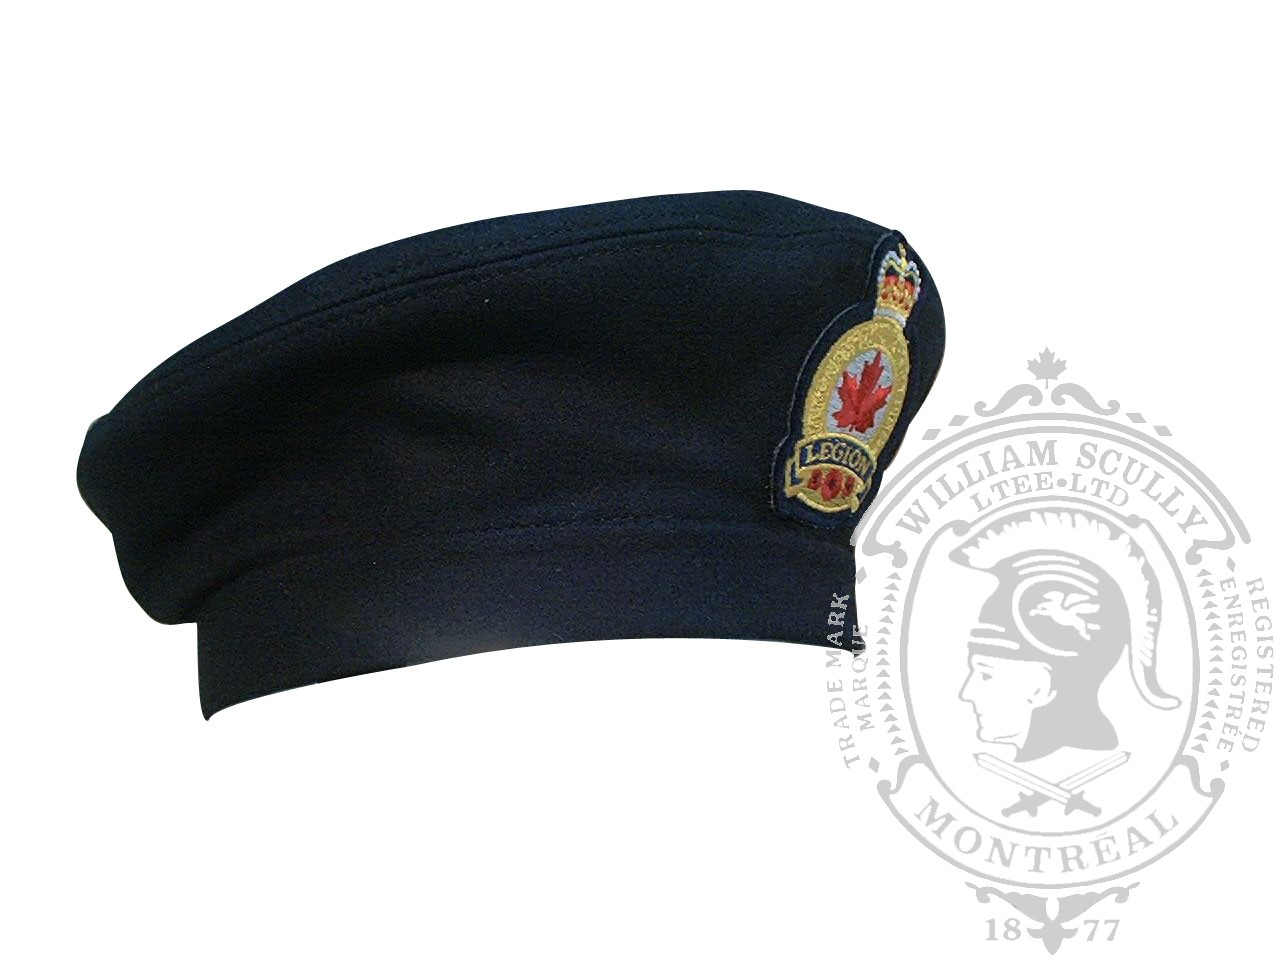 5-1004 Canadian Legion Beret